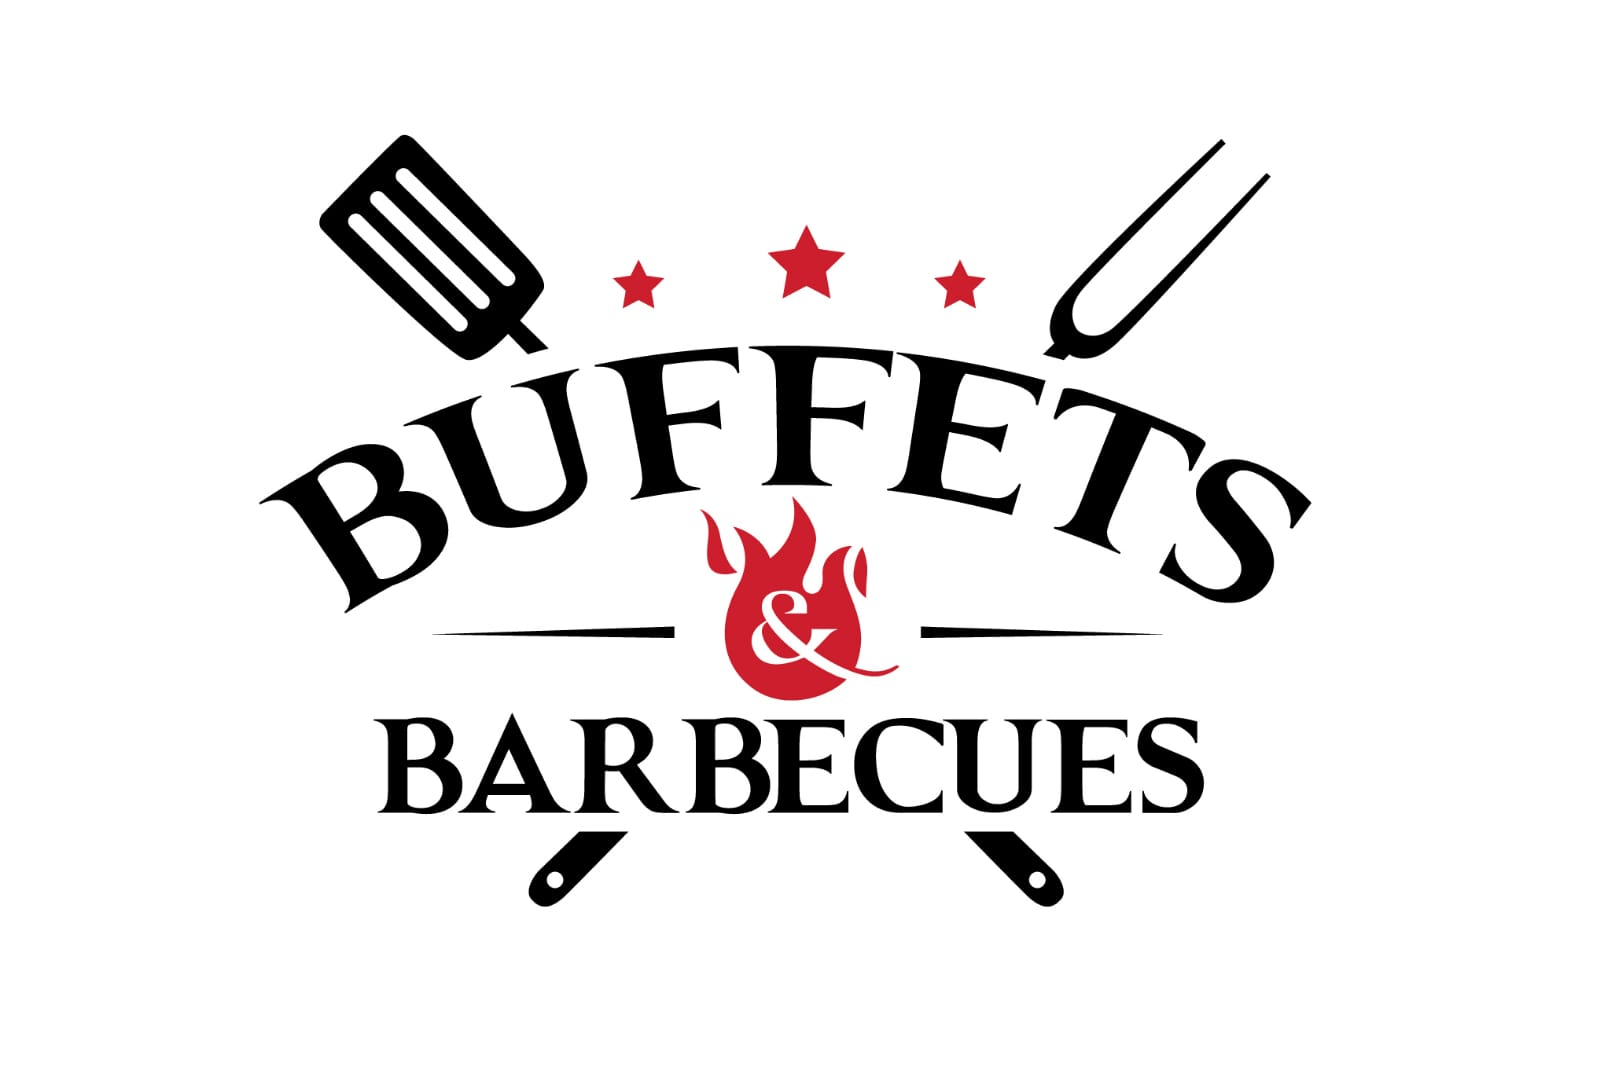 NEW BUFFET AND BBQ LOGO